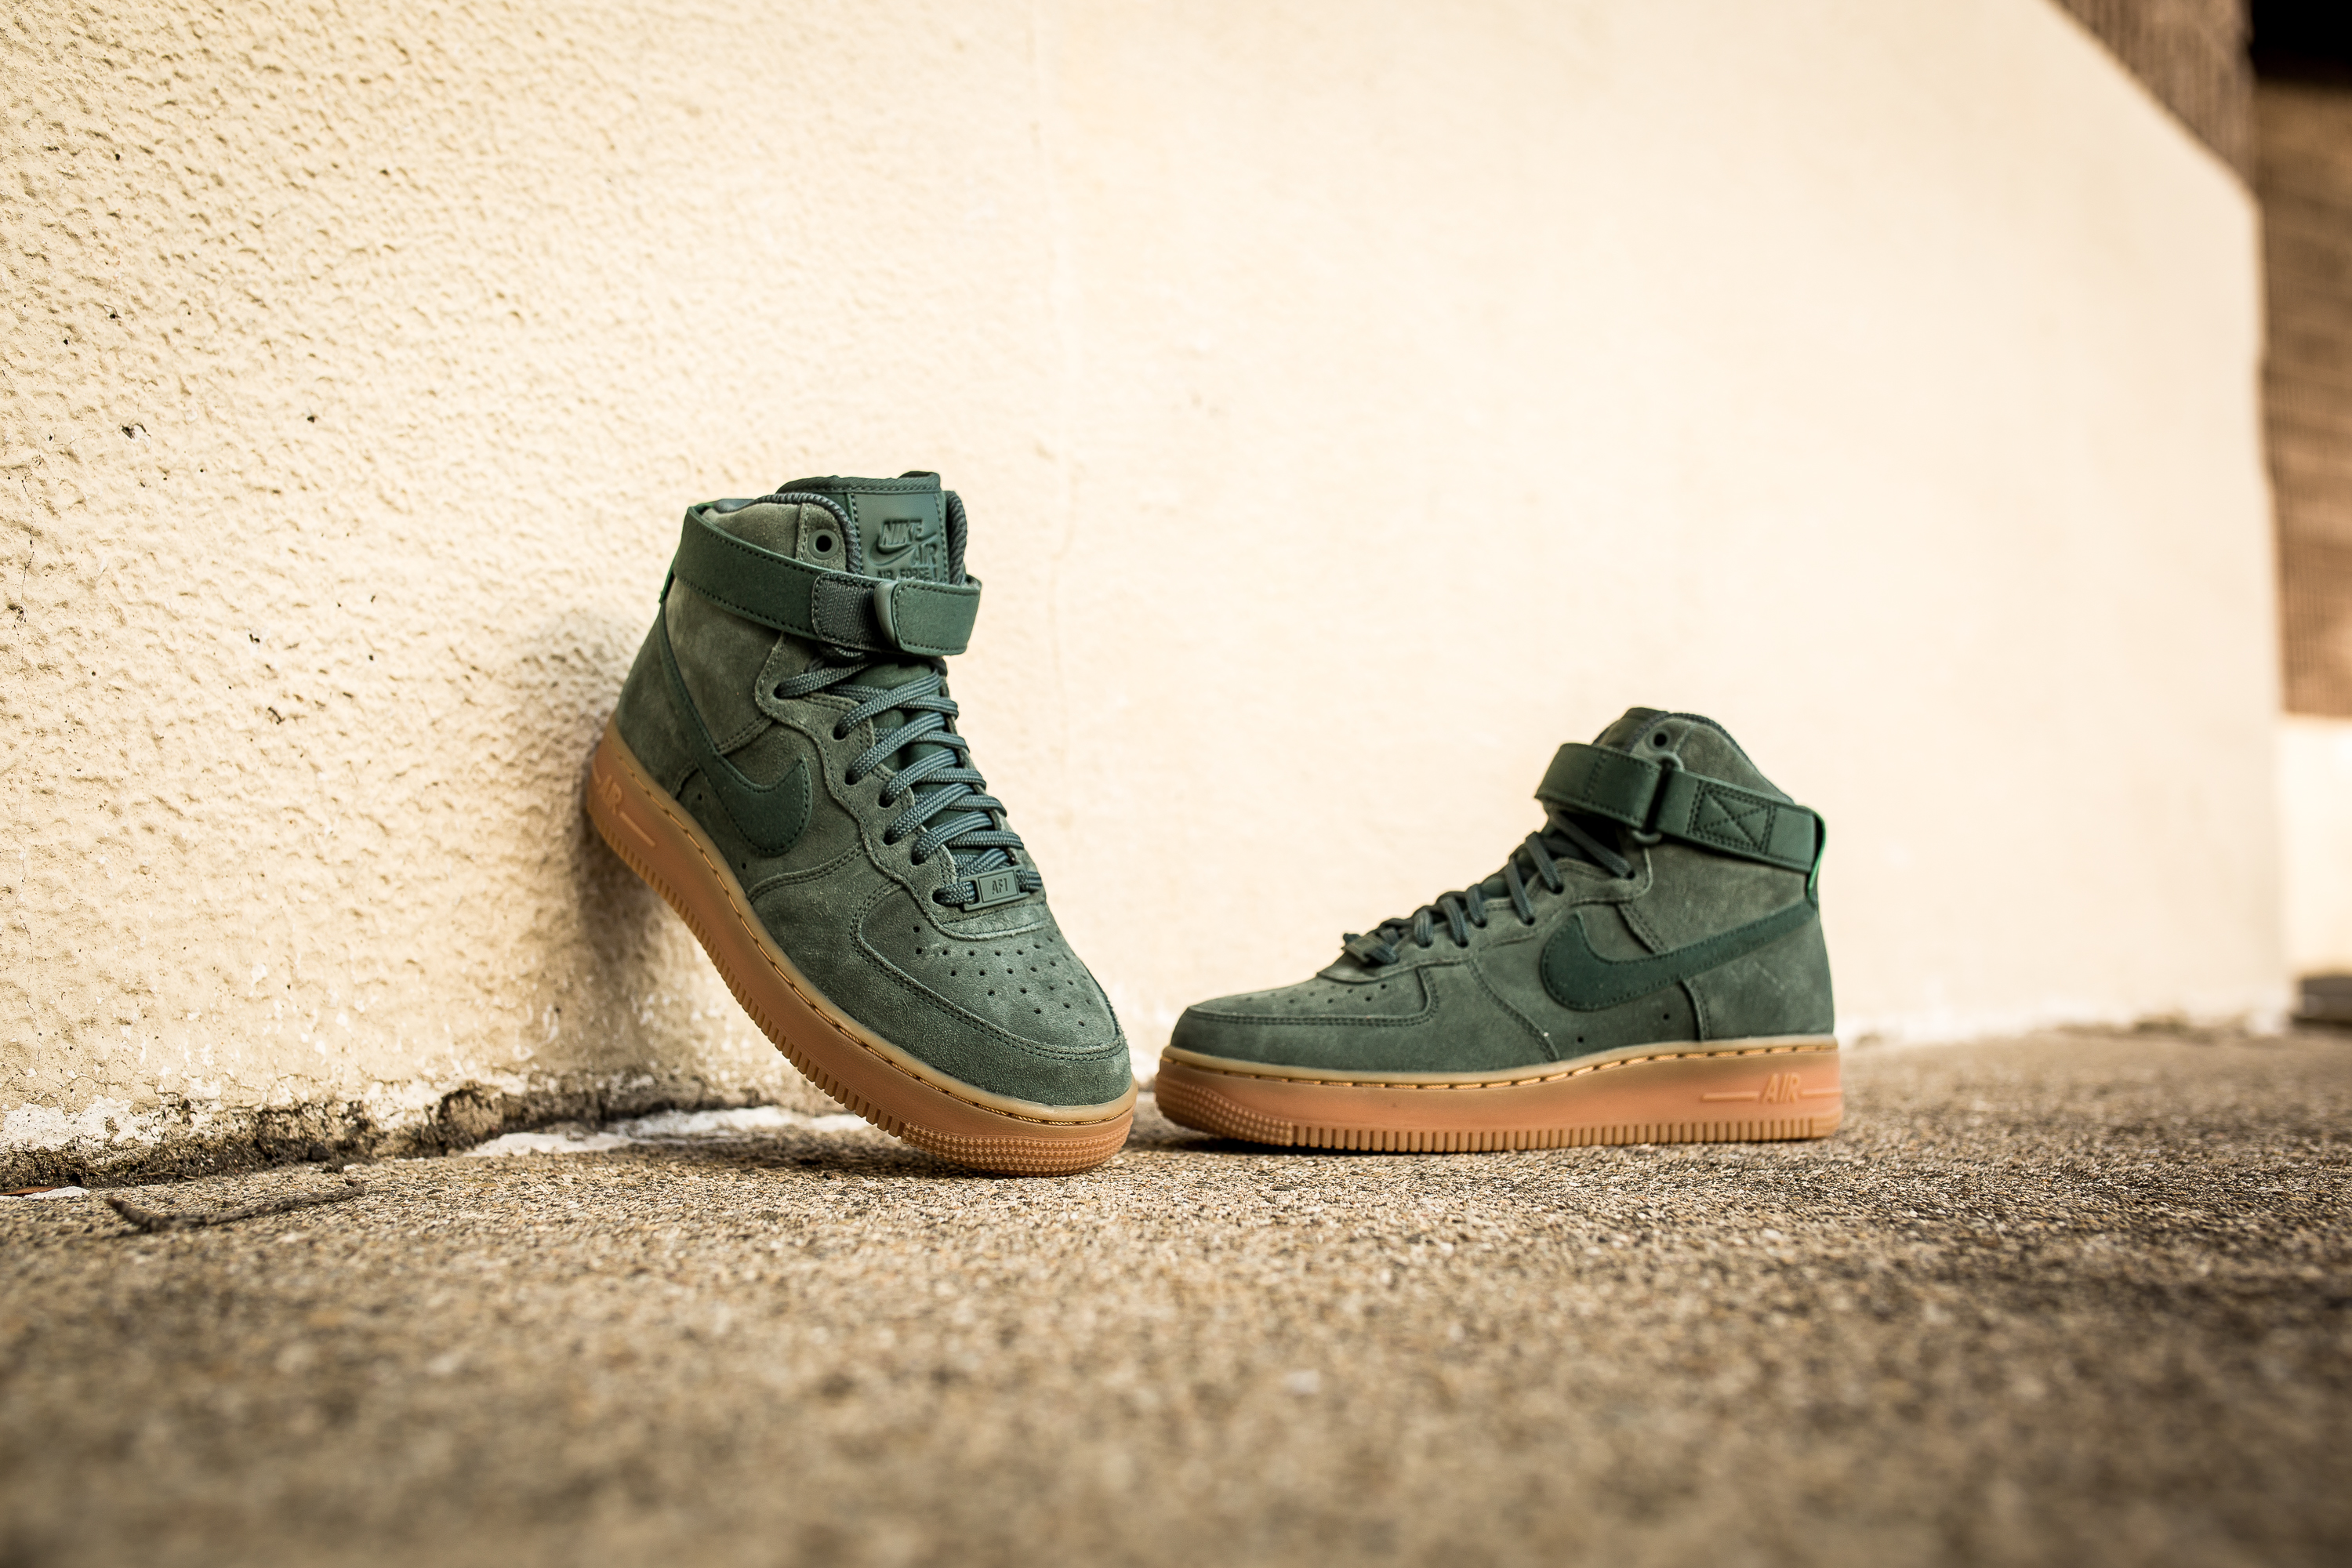 dd6f1cb3a67 Nike Air Force 1 High 07 LV8 Suede Vintage Green Gum Medium Brown Ivory  Womens Mens Shoes